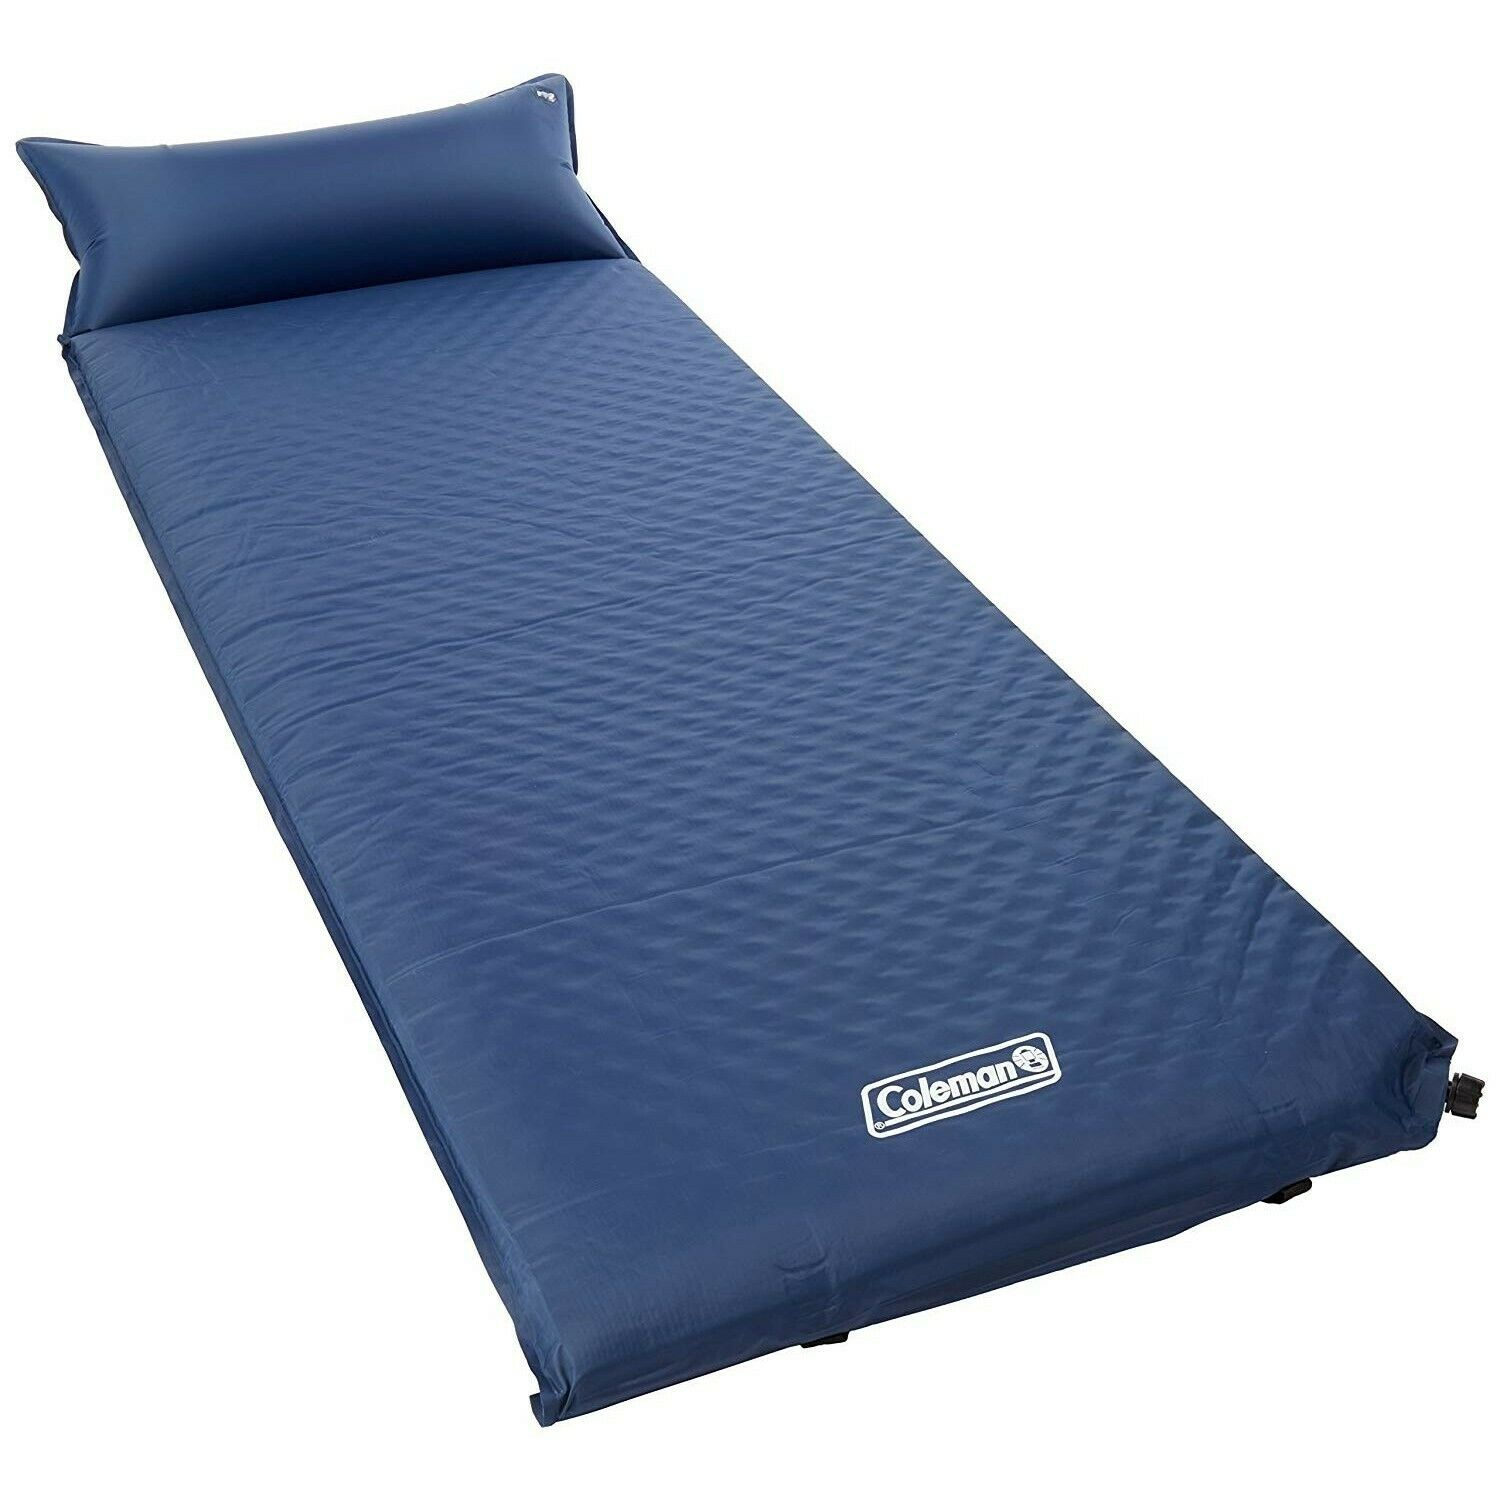 What Is The Best Twin Air Mattress To Have